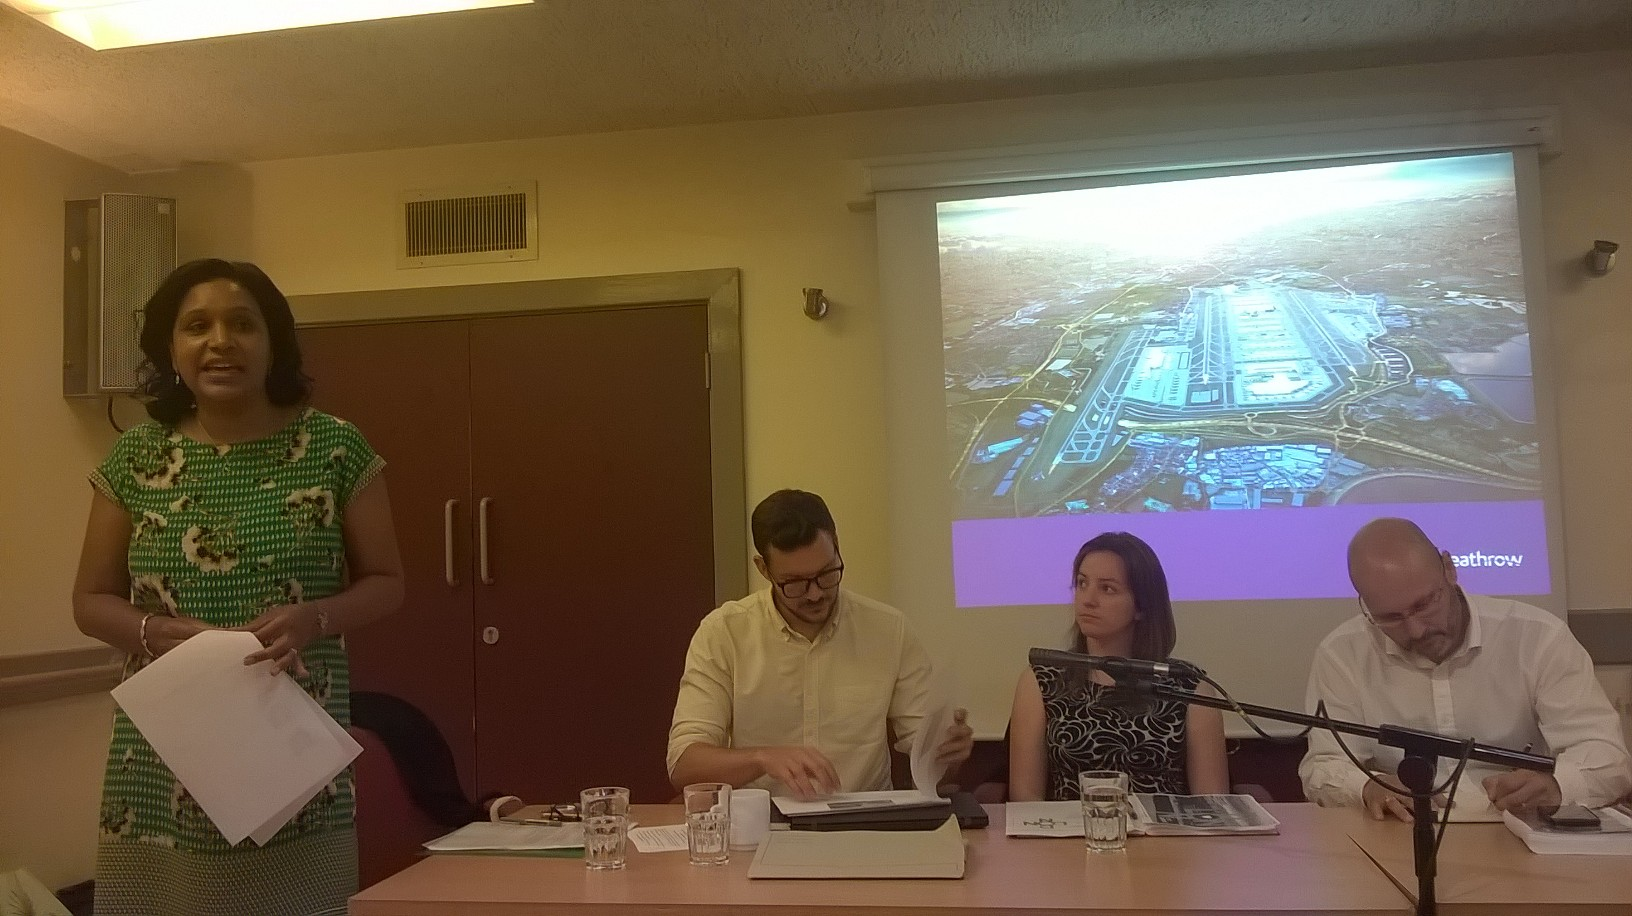 local MP janet DABY ORGANISED A MEETING IN catford on 26th July . London City, Heathrow and NATS presenting. Much concern from a packed room about noise and a desire for the two airports to collaborate to provide periods of respite.